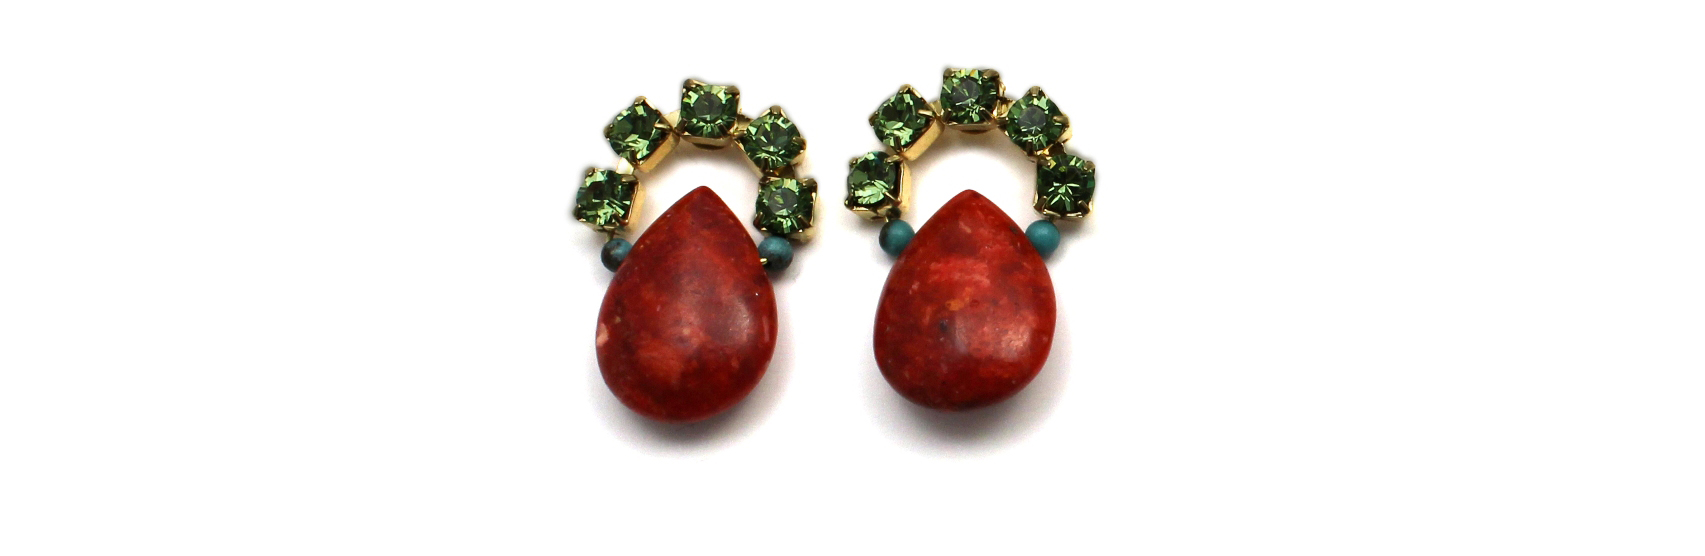 102 Peridot & Red Coral Earrings.jpg